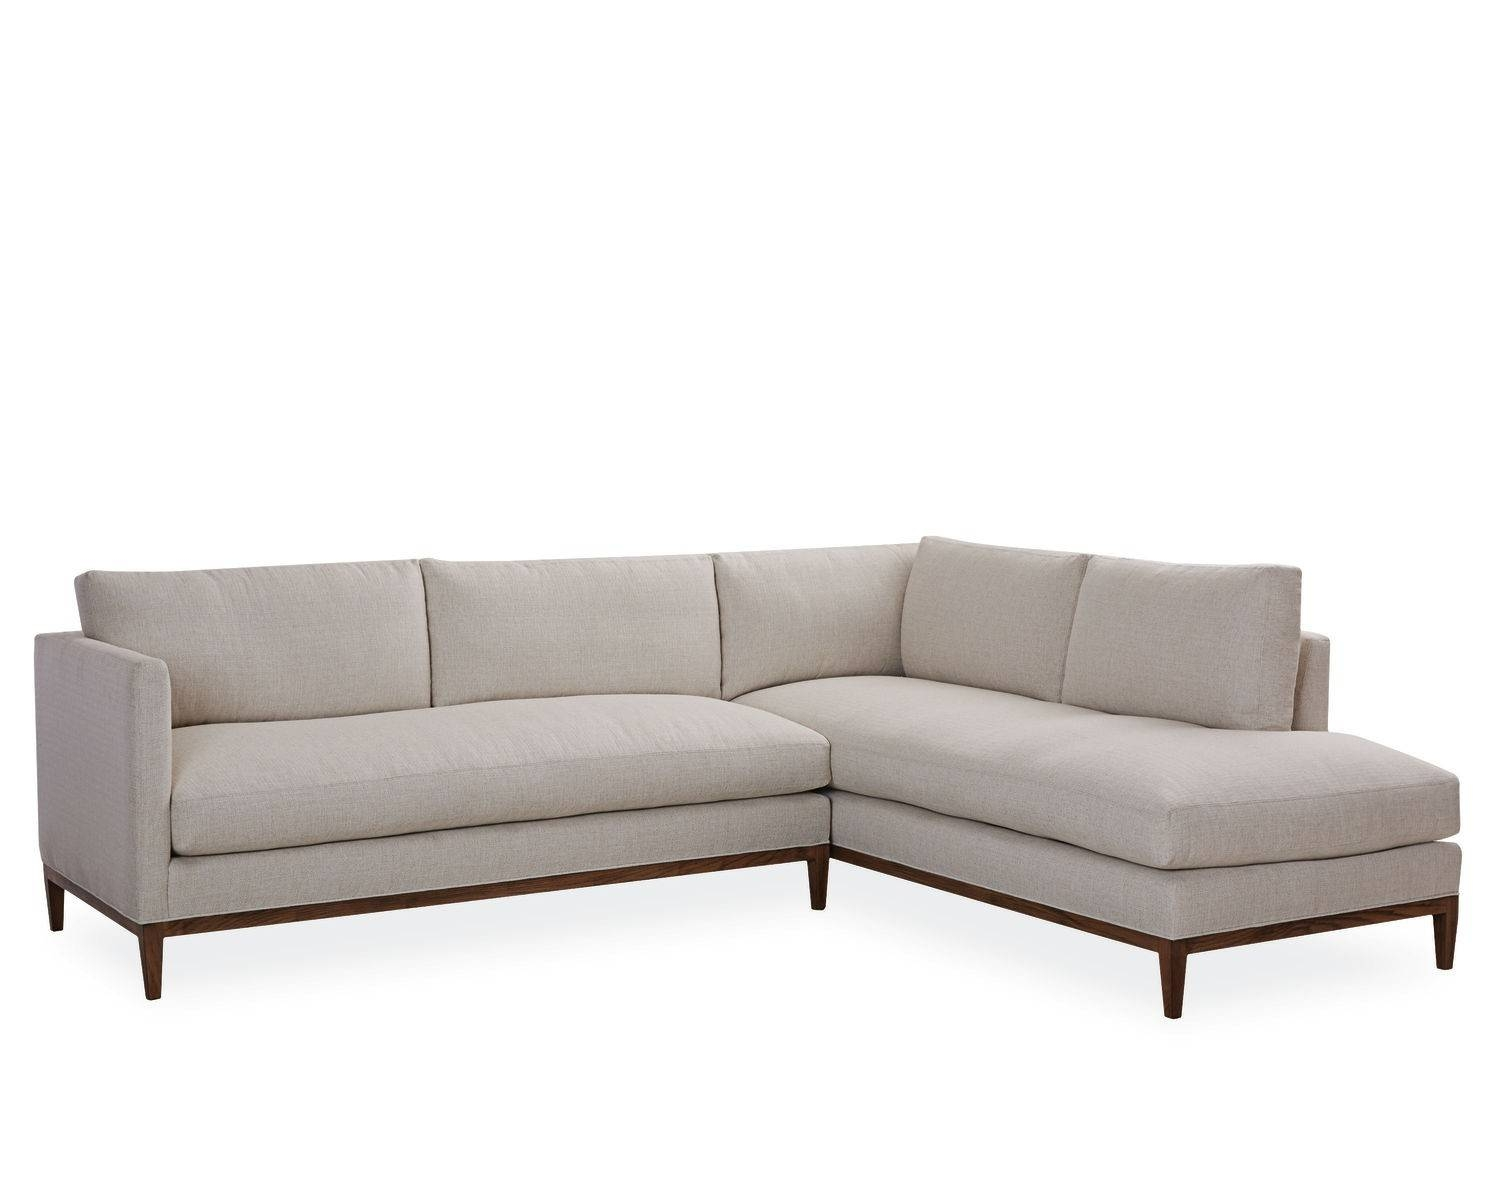 American Furniture | Palm Springs Chaise Sectional | Lee Industries within Lee Industries Sectional Sofa (Image 8 of 25)